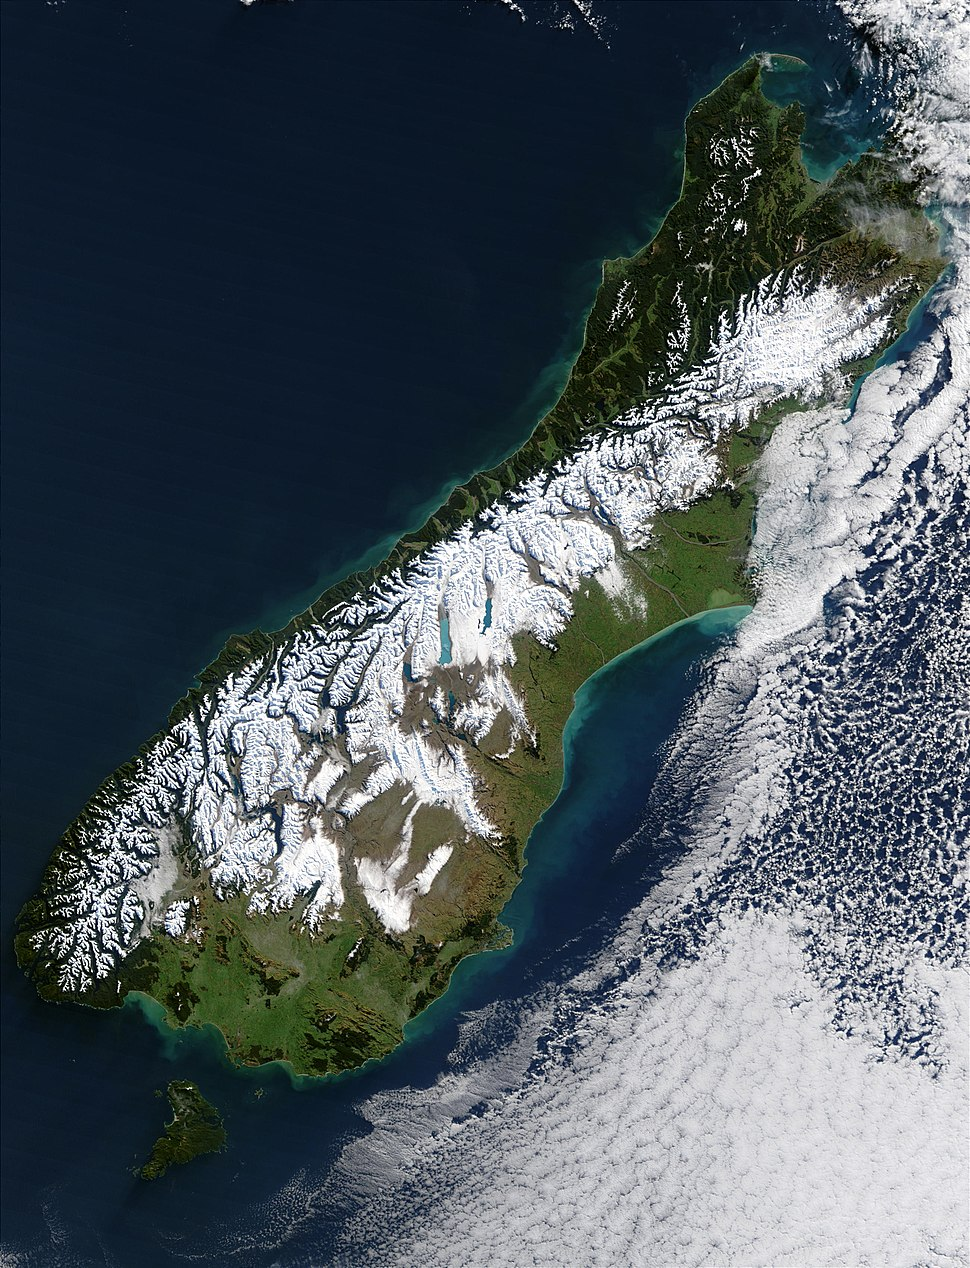 South Island blizzard 2003